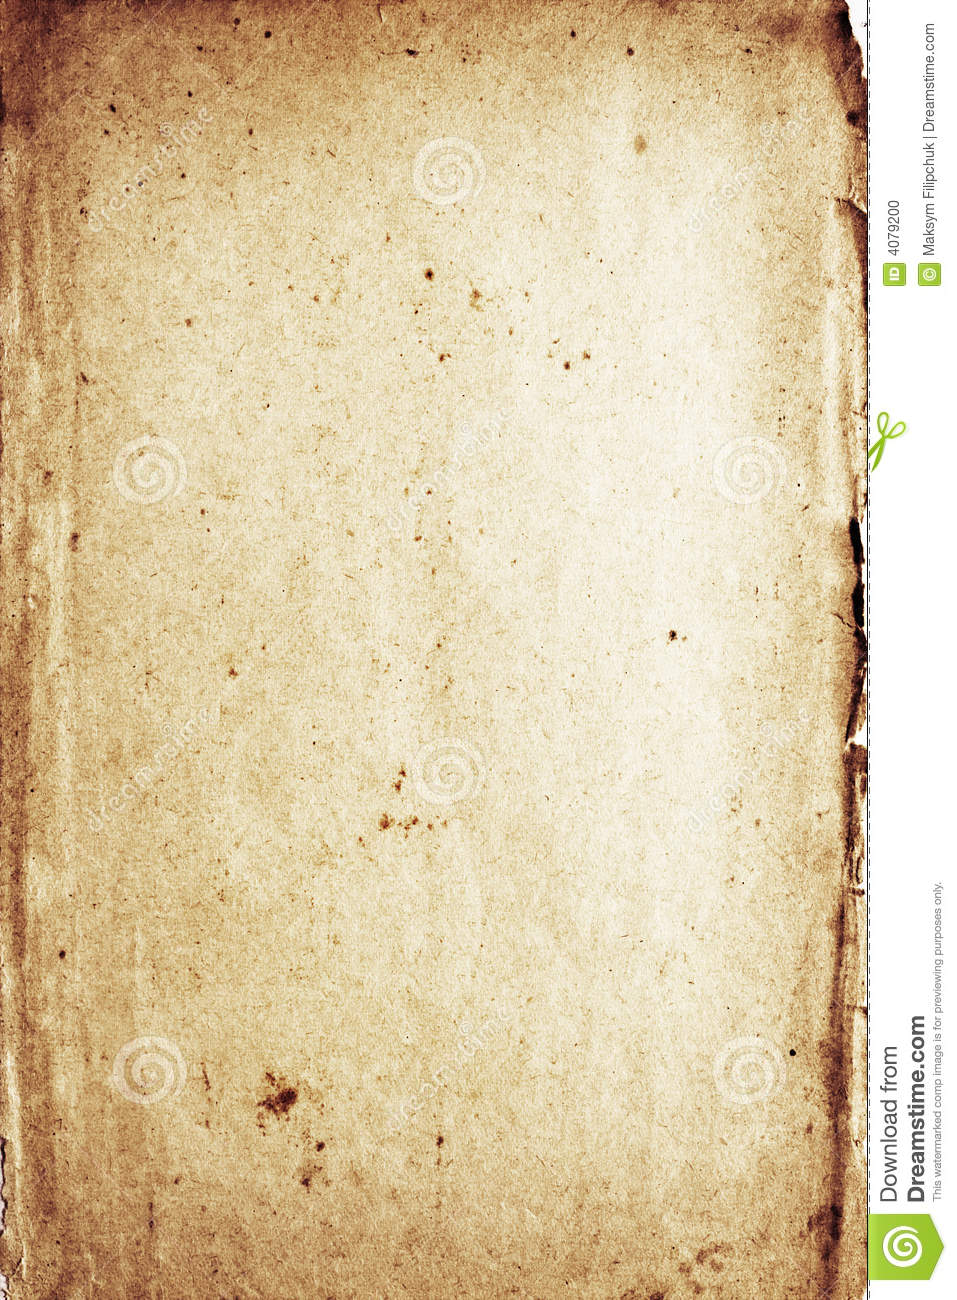 Shabby Deutsch Distressed Rotting Paper Stock Photo - Image: 4079200